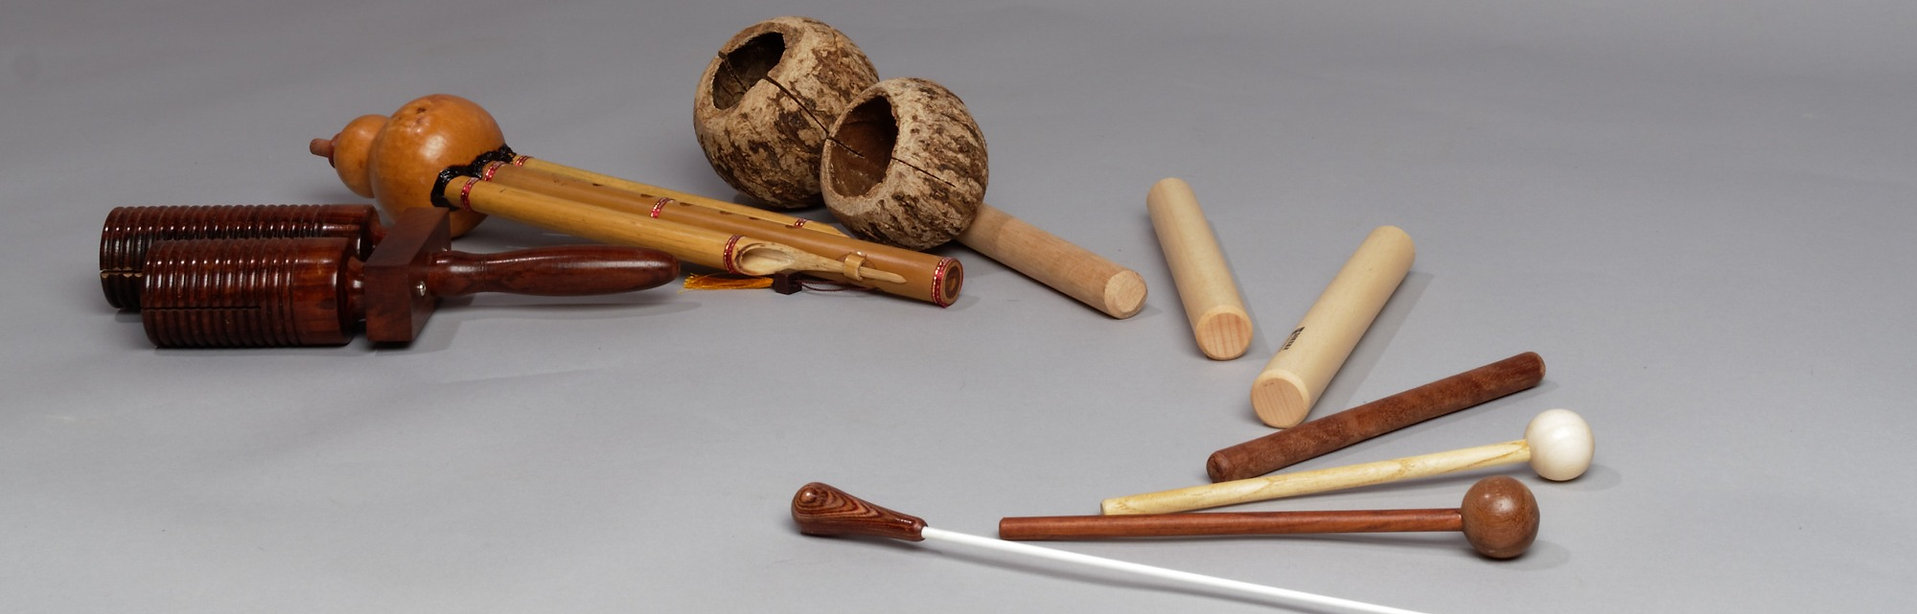 Percussions et direction.jpg